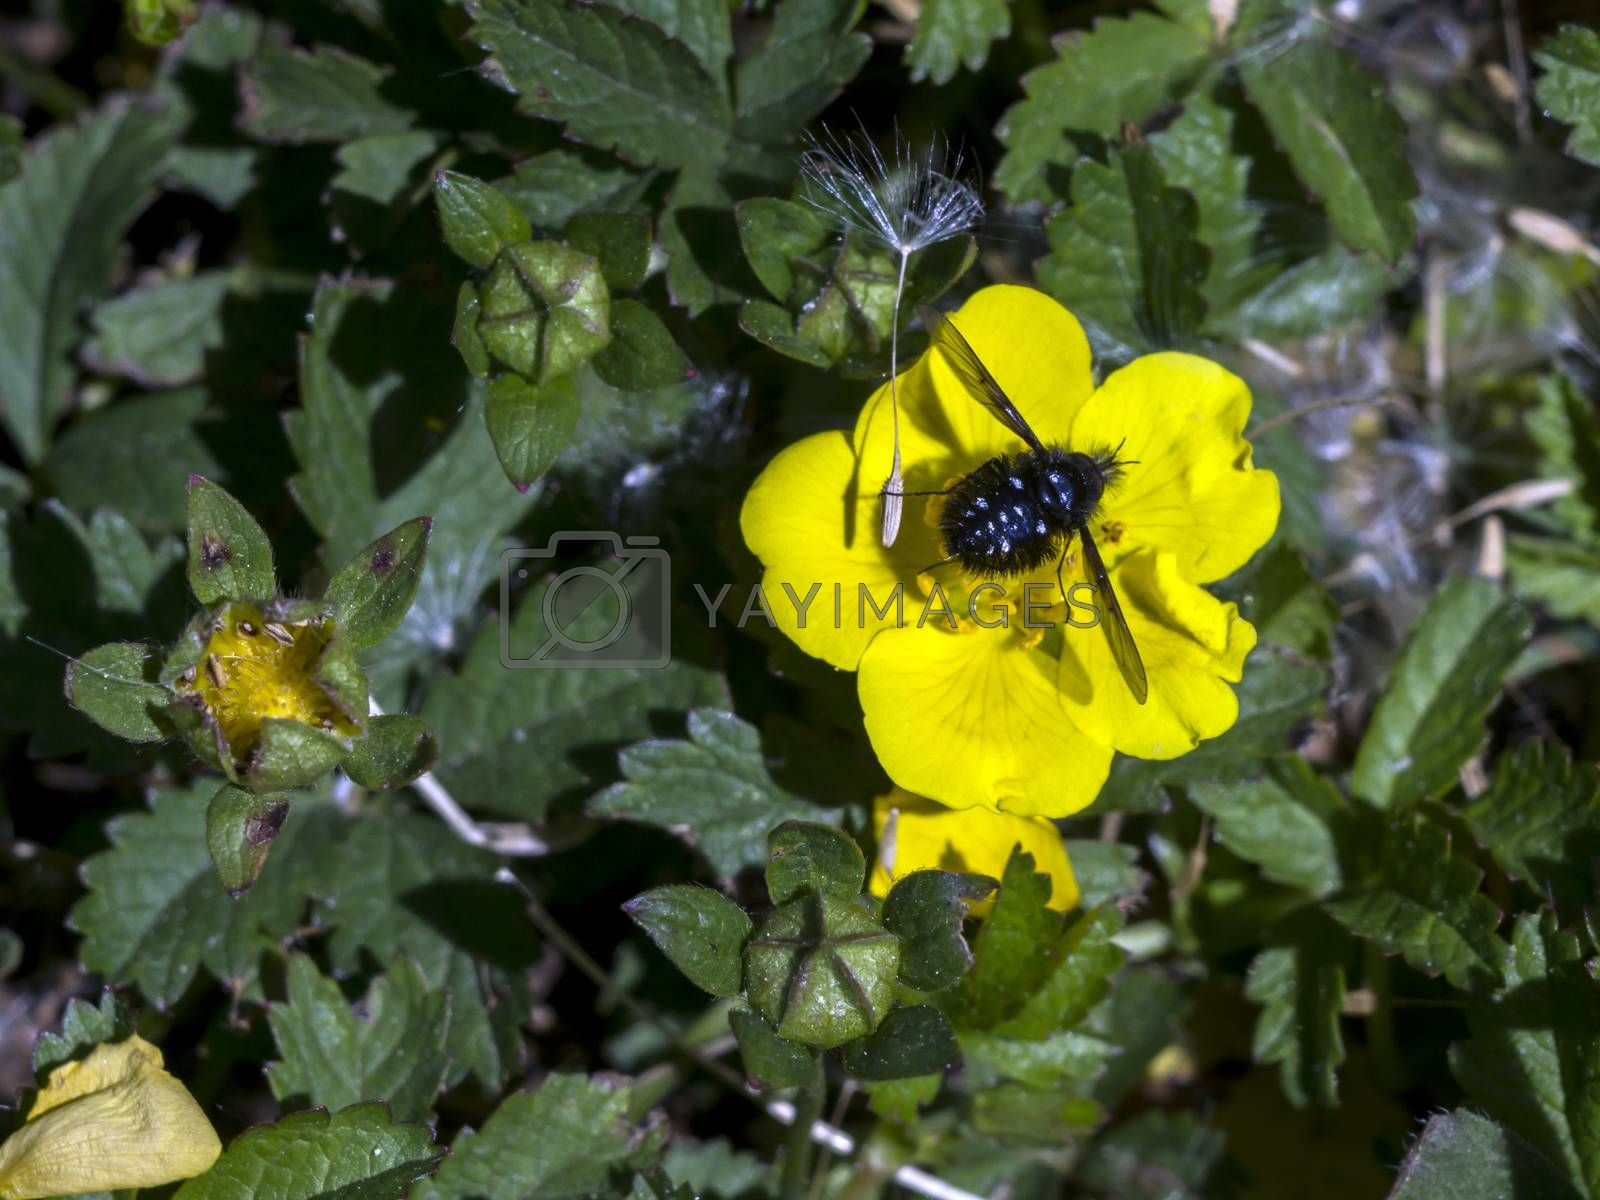 The spring pimp (Potentilla neumanniana) flower in the field.